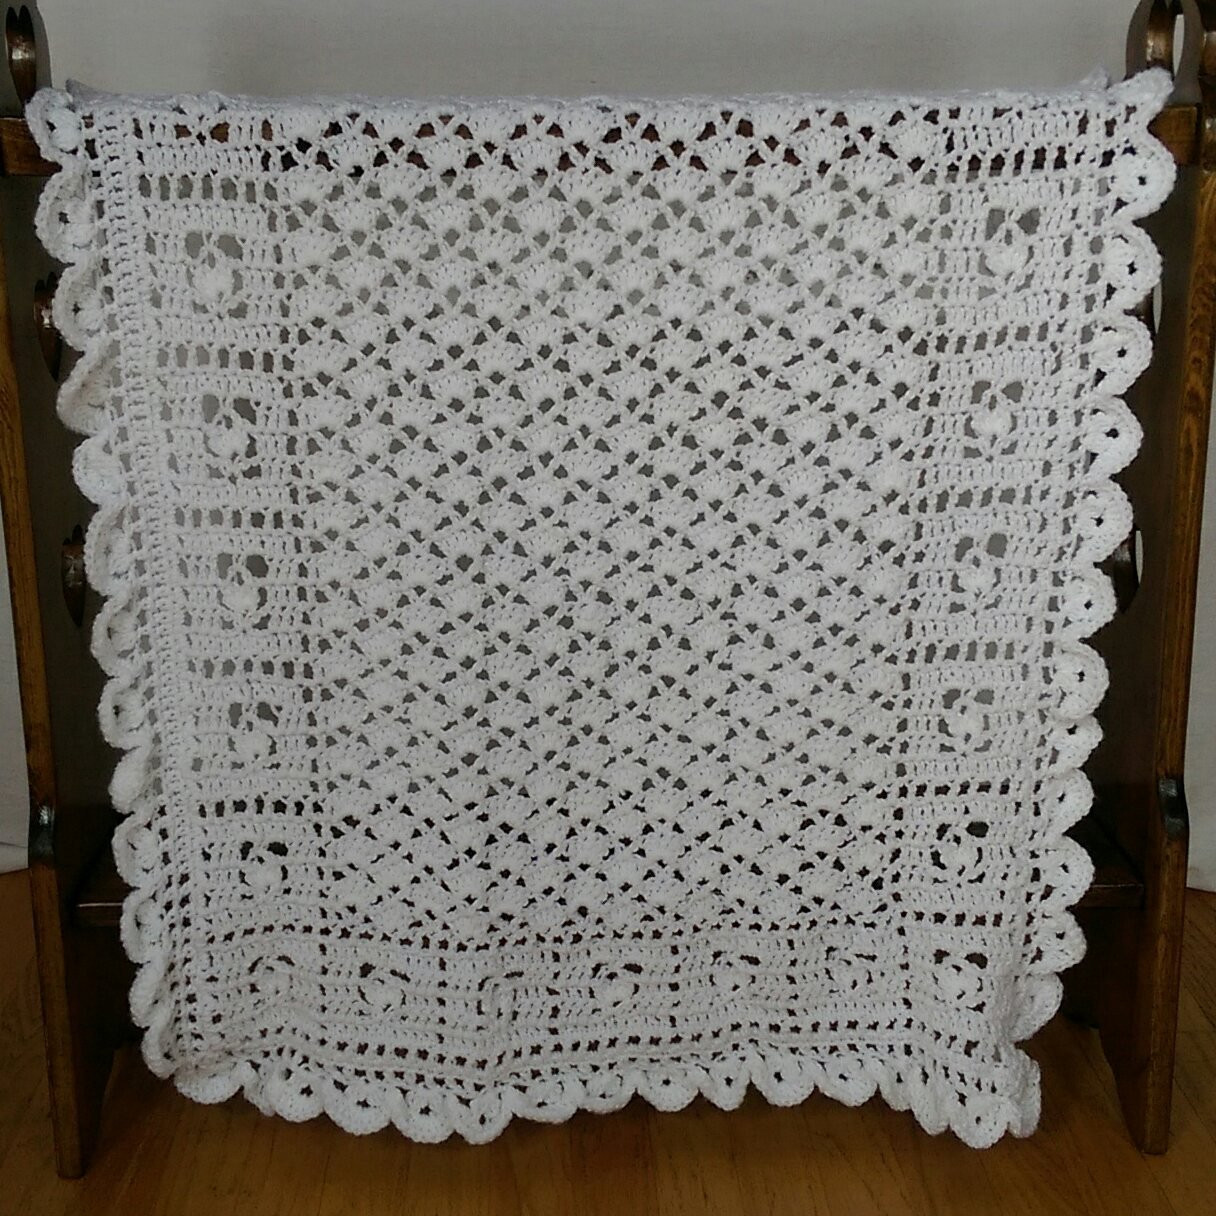 Heirloom Baby Blanket Best Of Crochet Baby Blanket White 29 X 36 Heirloom Of Awesome 42 Ideas Heirloom Baby Blanket